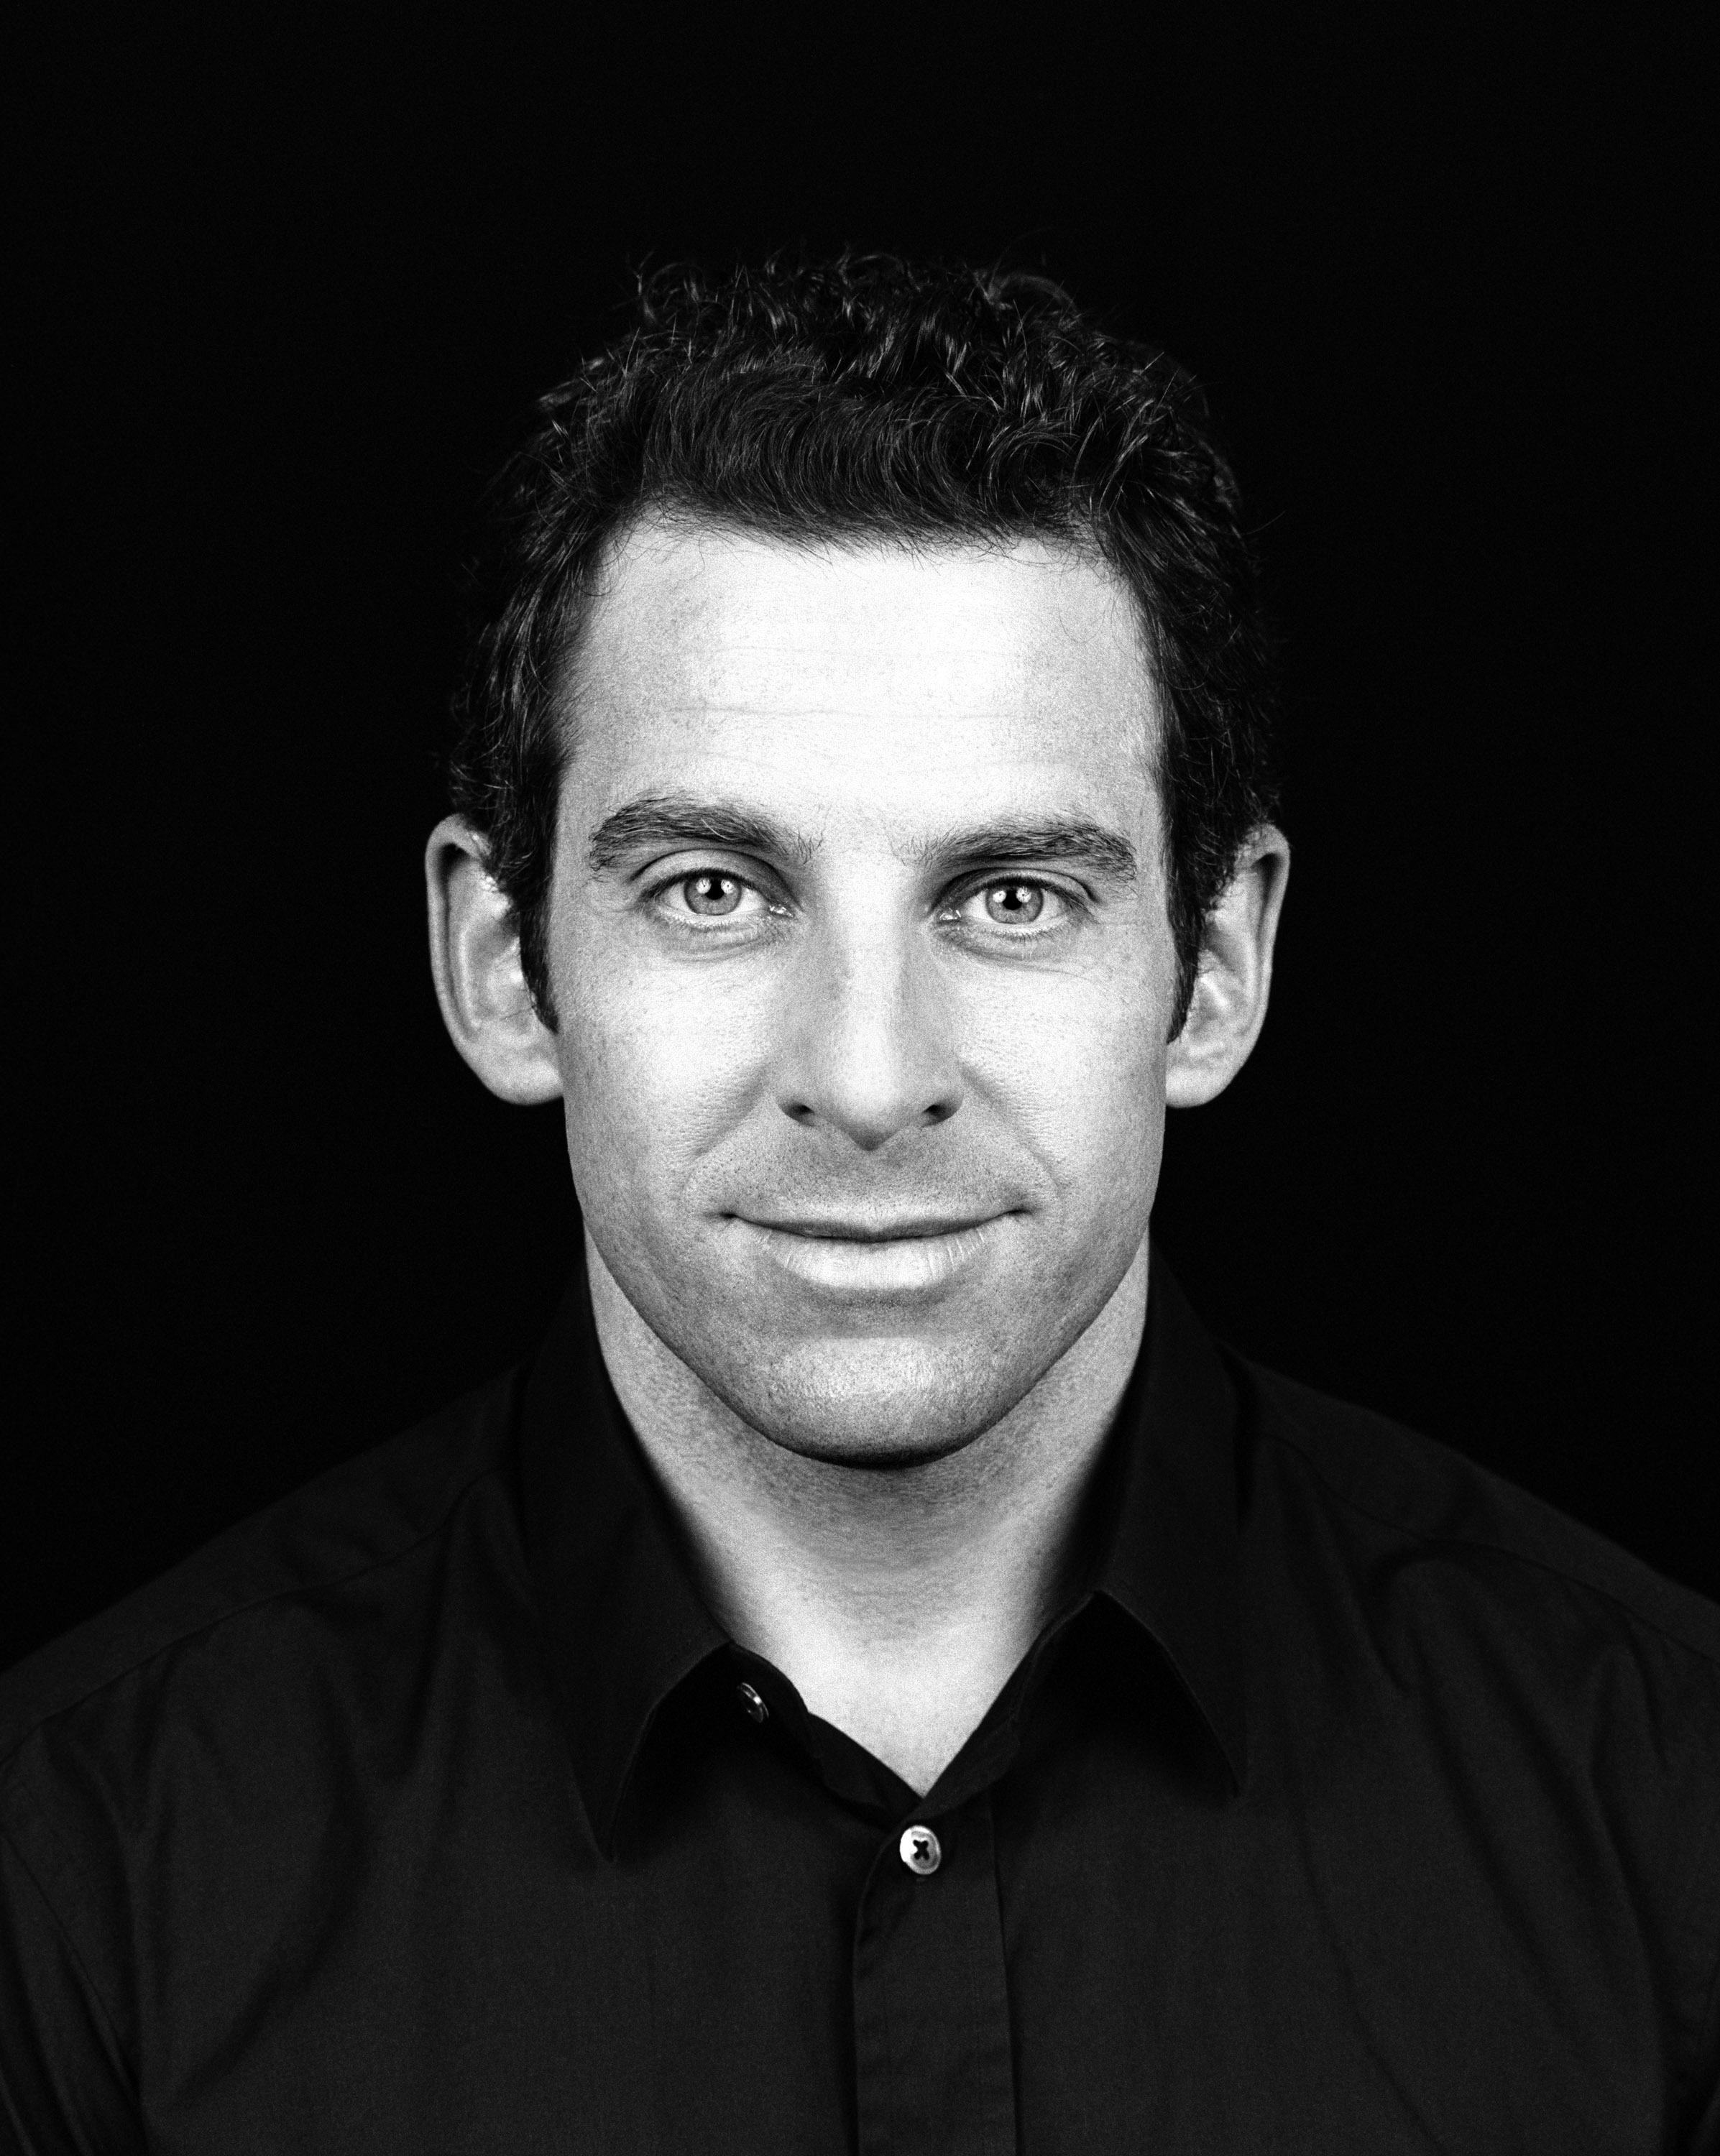 Sam Harris, author and neuroscientist.